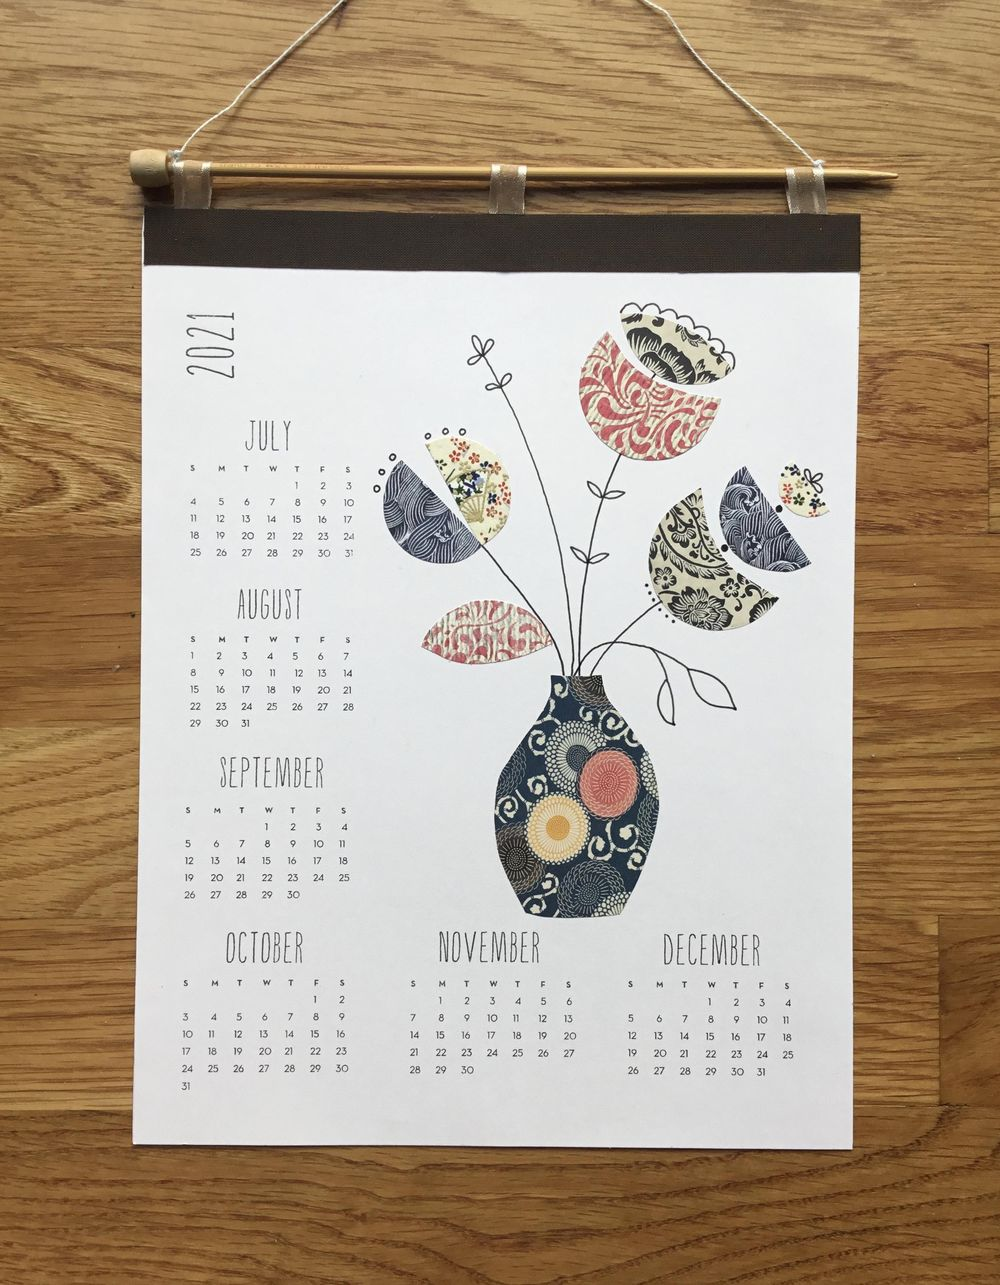 Collage calendar - image 2 - student project